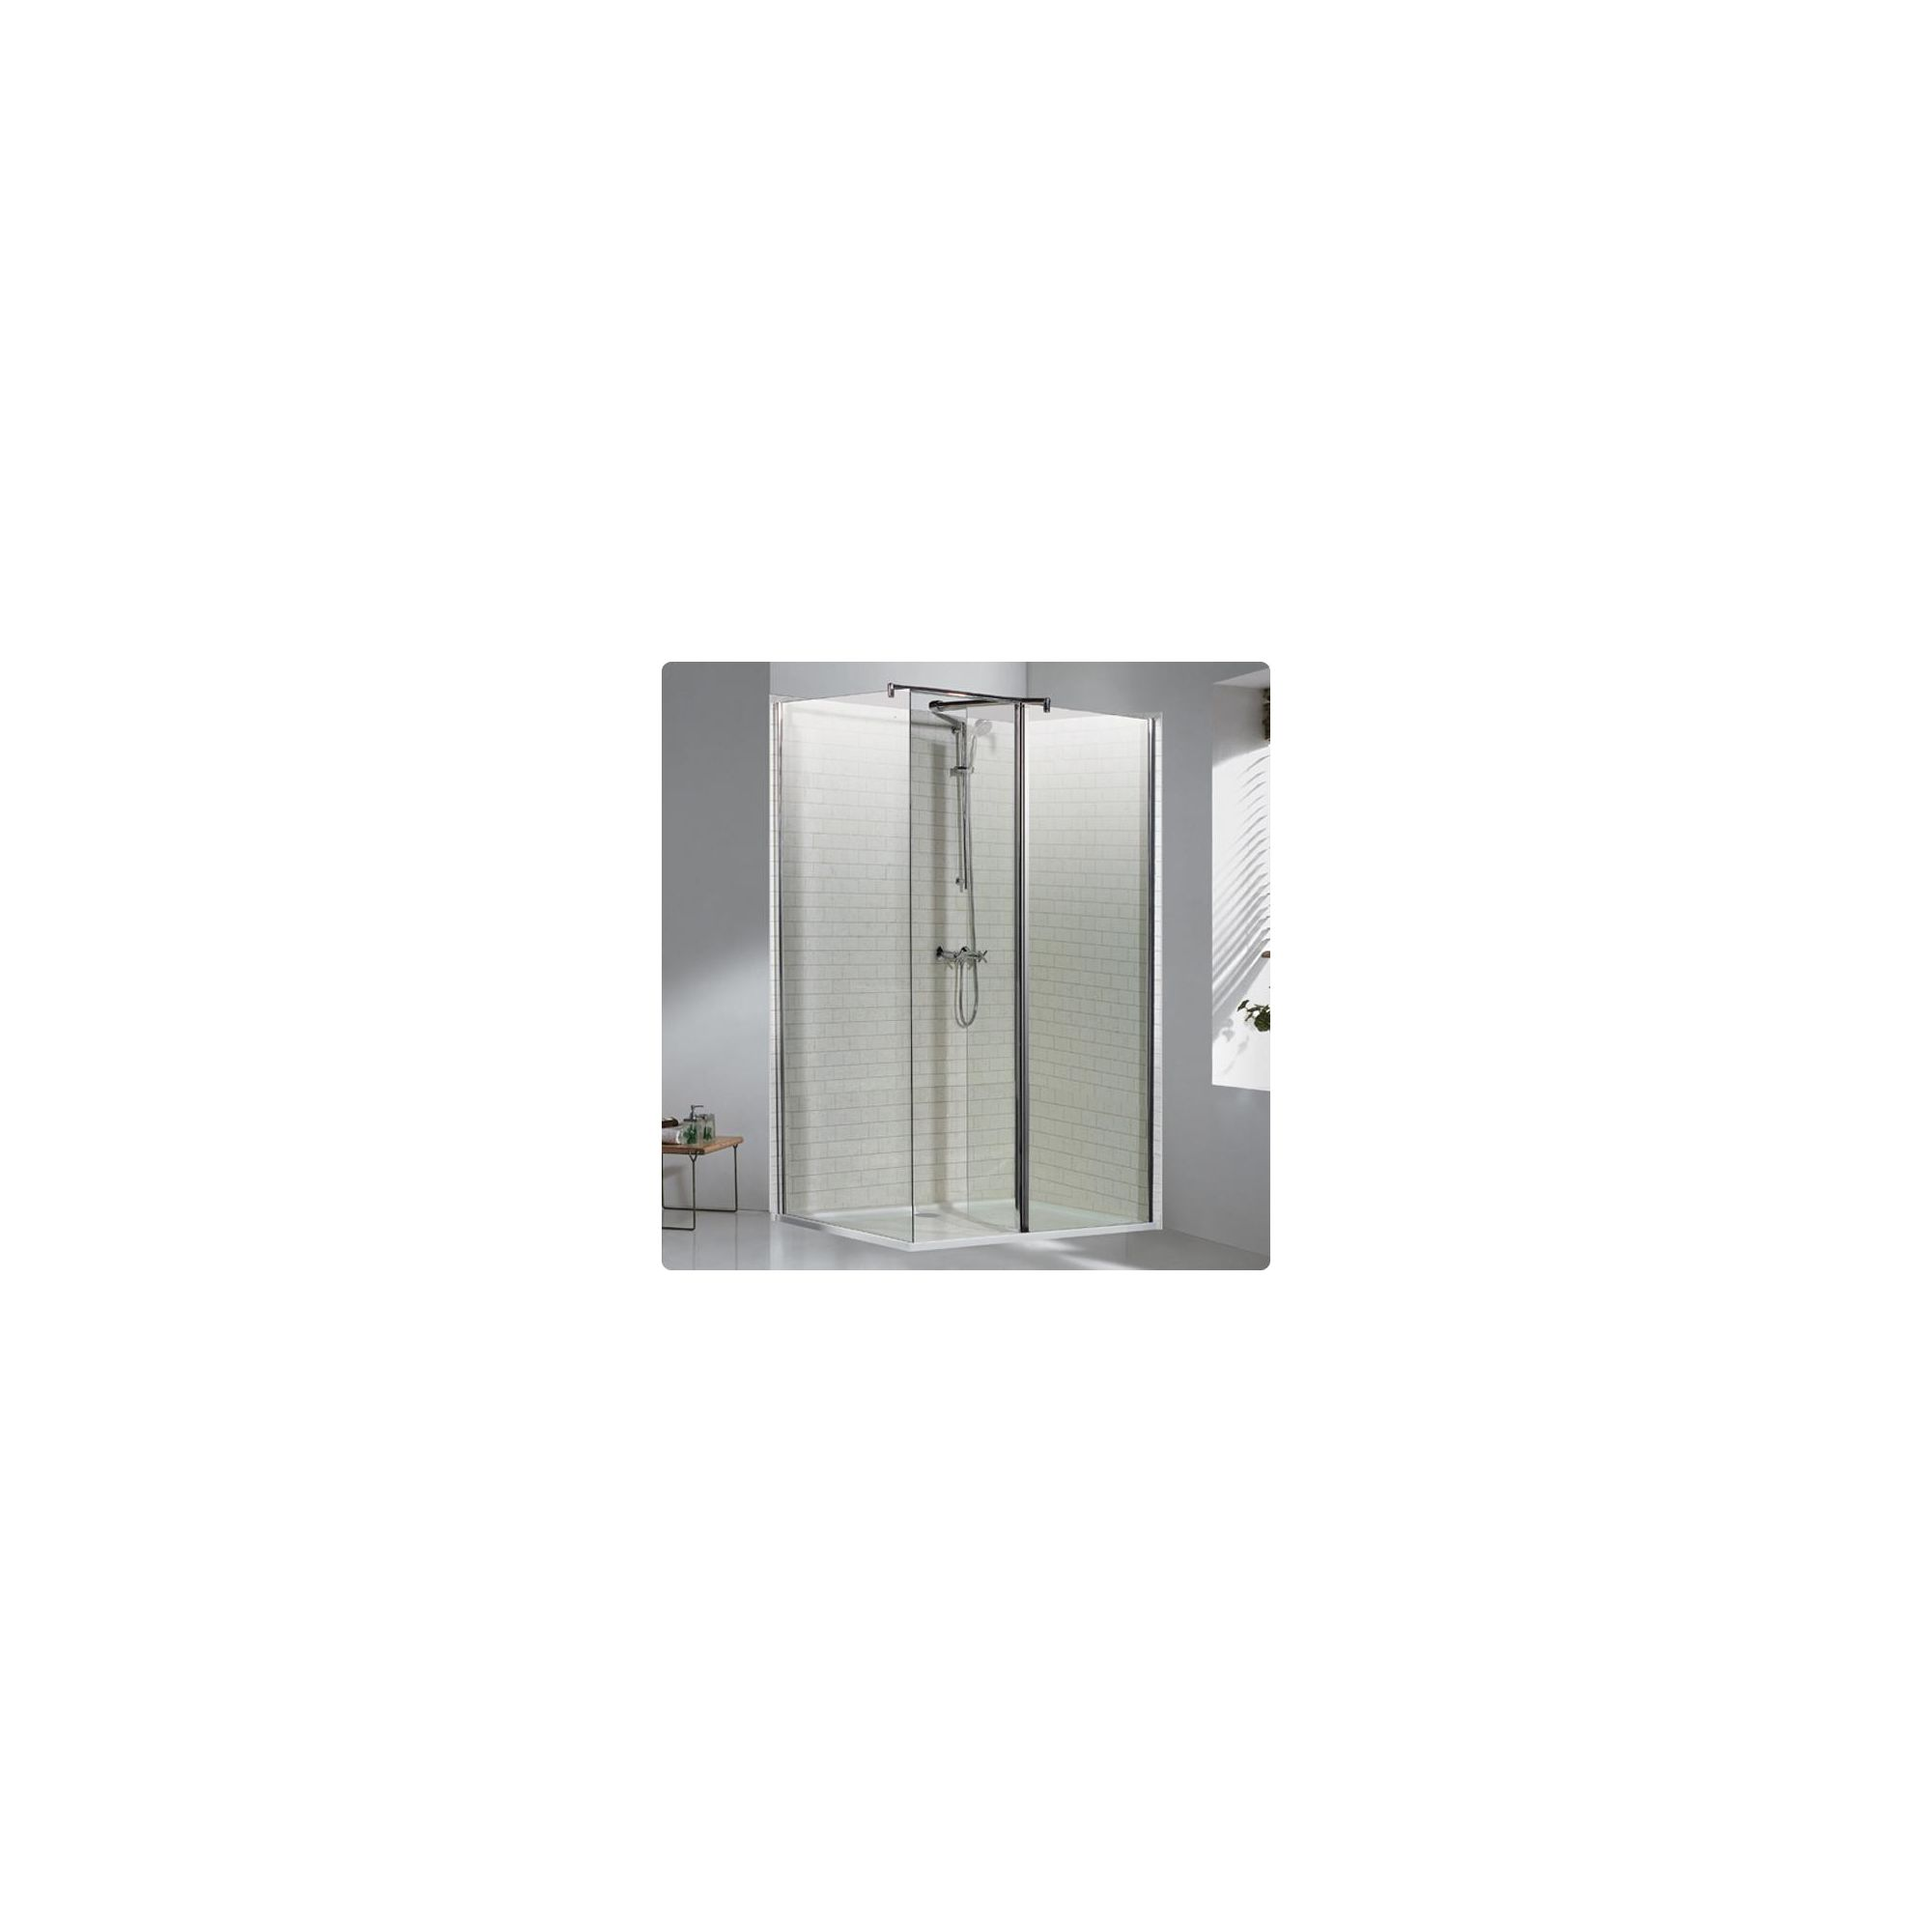 Duchy Choice Silver Walk-In Shower Enclosure 1200mm x 800mm (Complete with Tray), 6mm Glass at Tesco Direct